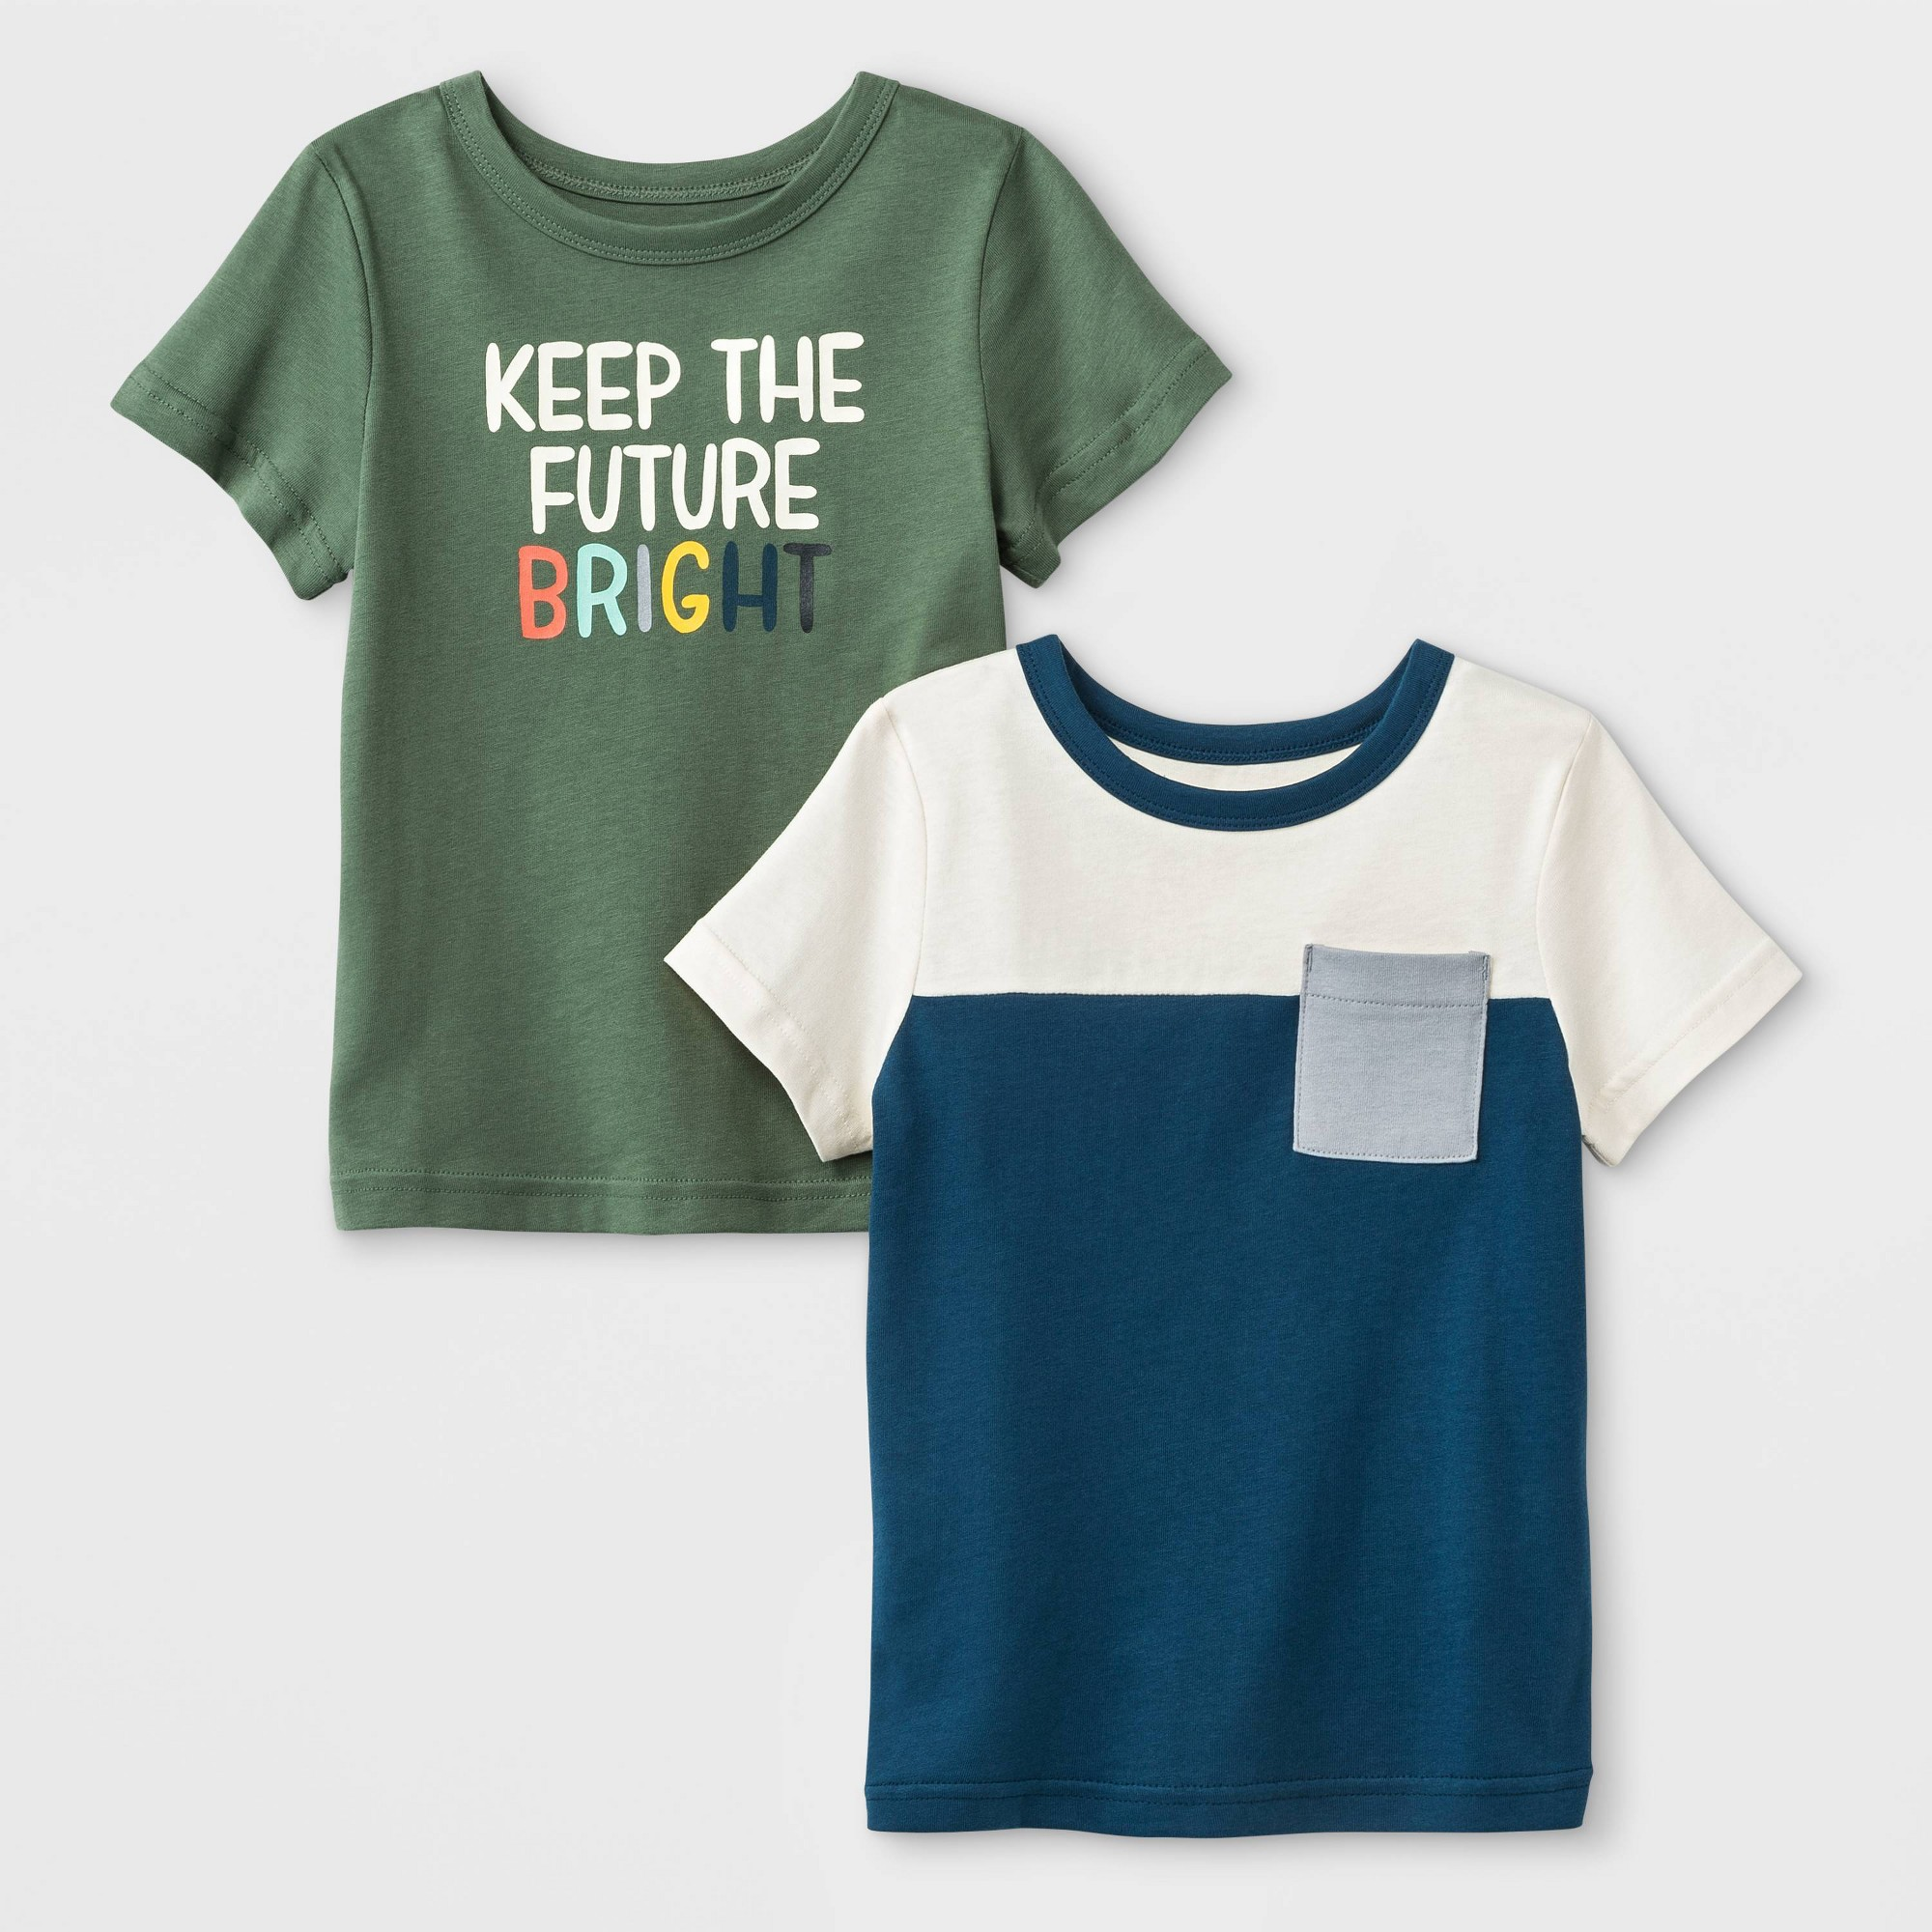 Toddler Boys' 2pk Short Sleeve Jersey Keep The Future Bright T-Shirts - Cat & Jack Blue/Olive 5T